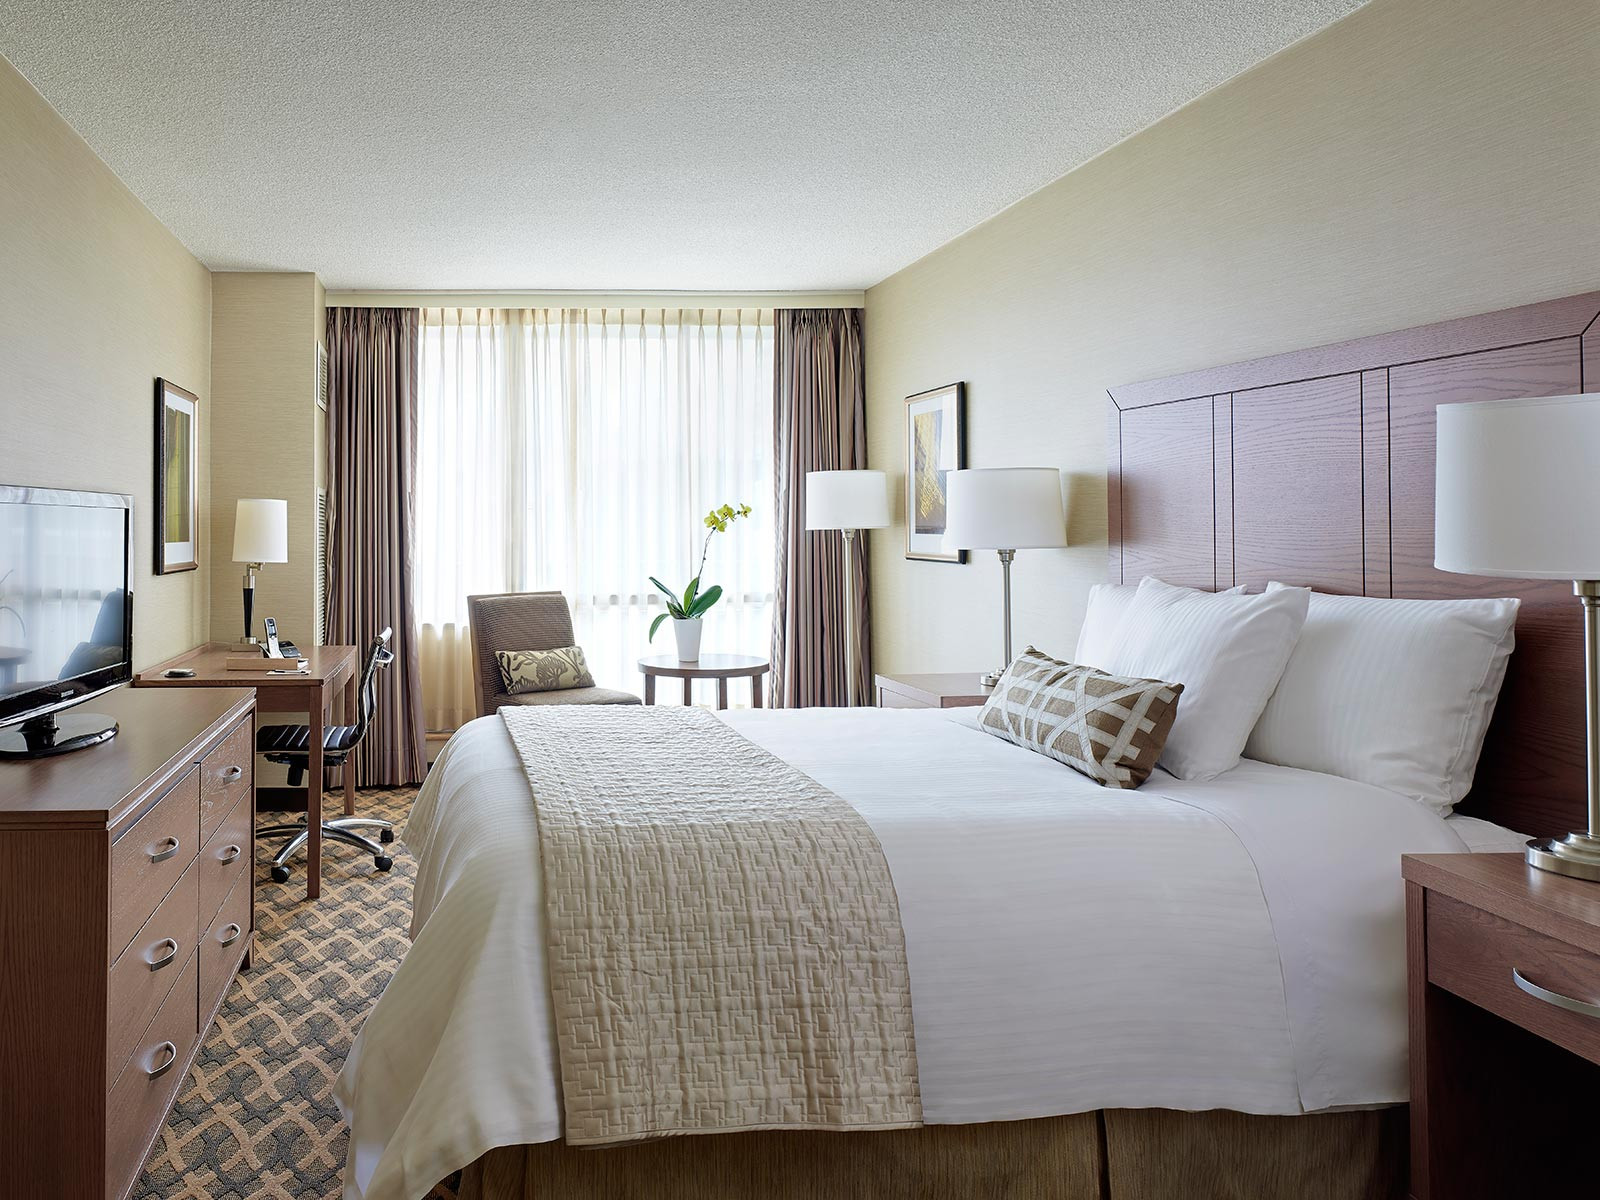 Best ideas about 2 Bedroom Suites . Save or Pin Two Bedroom Family Suite with Kitchenette Now.